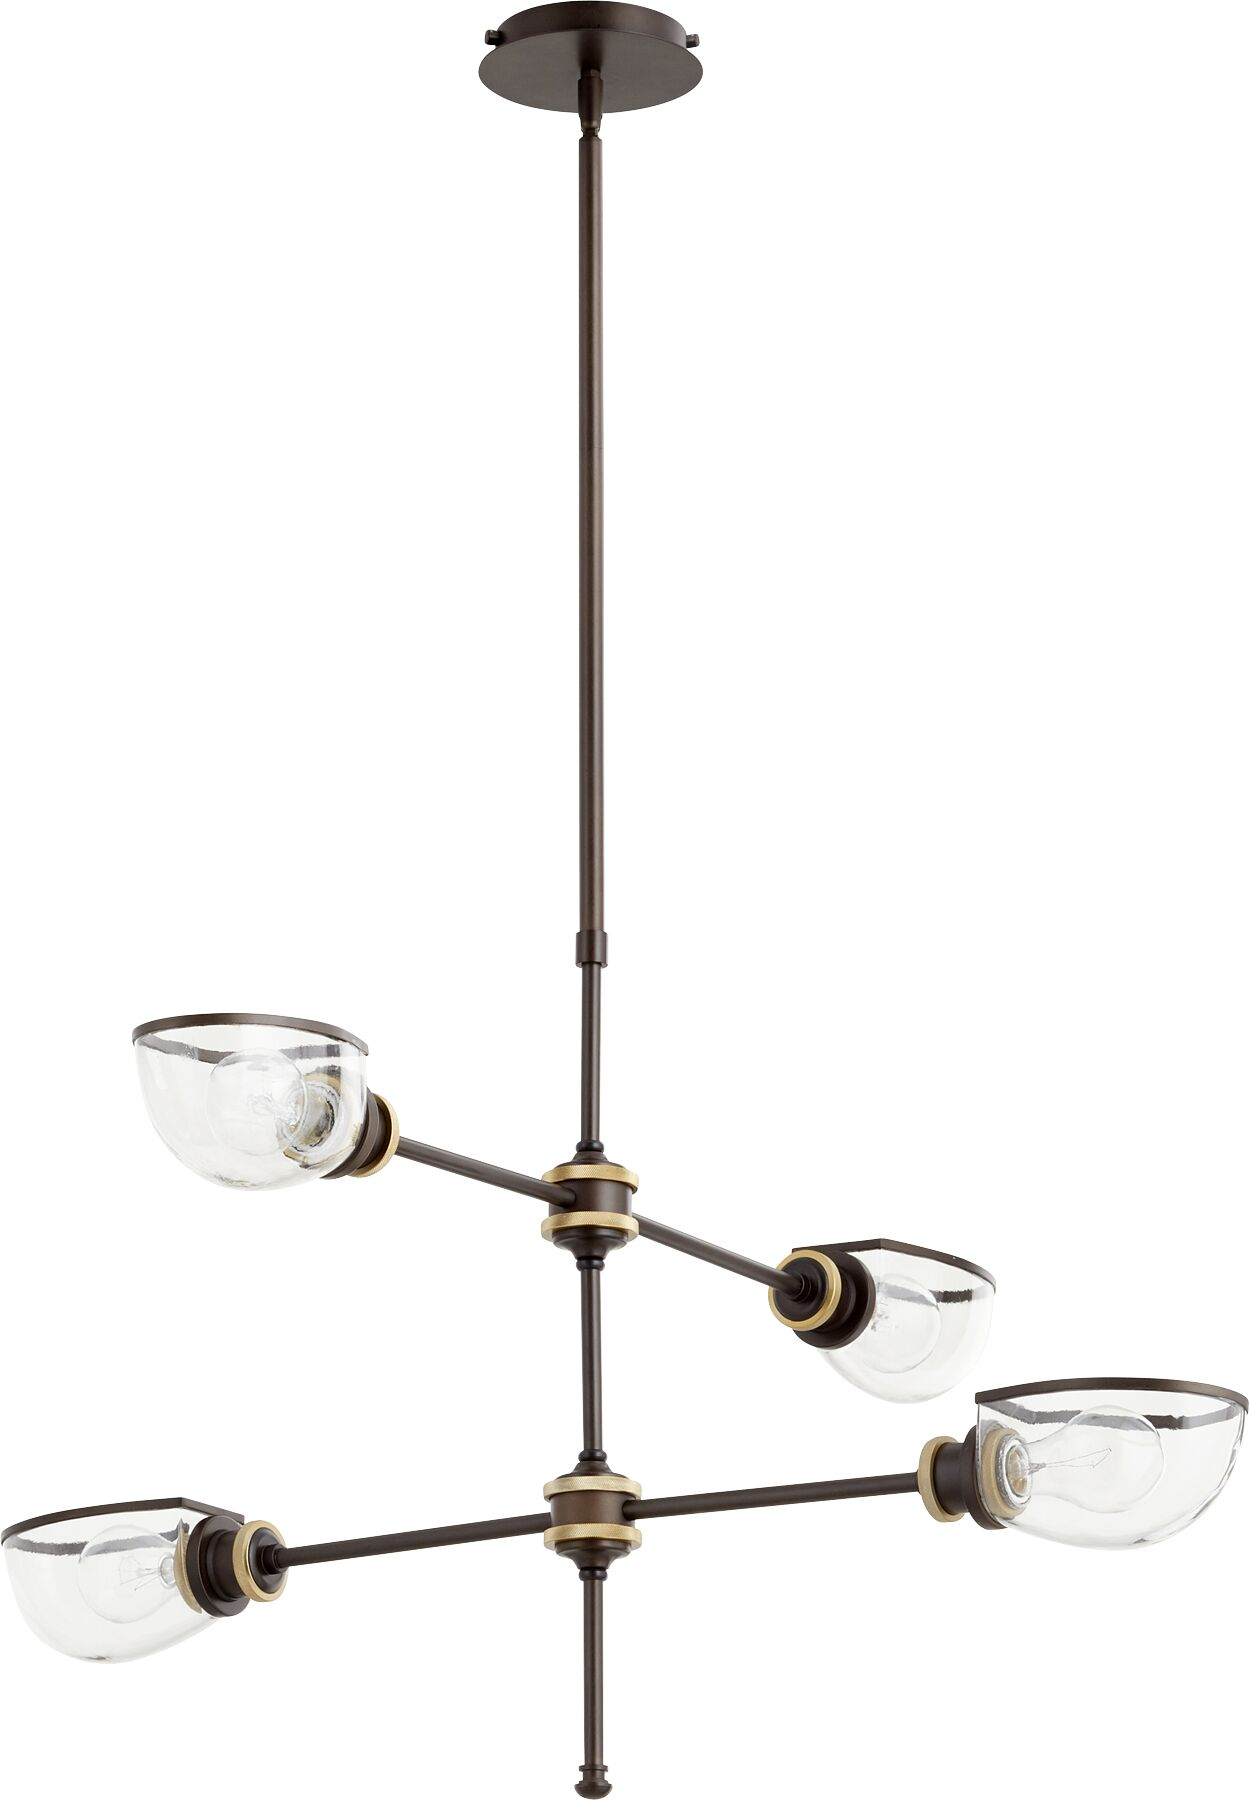 Digiovanni 4-Light Shaded Chandelier Finish: Aged Brass Oiled Bronze